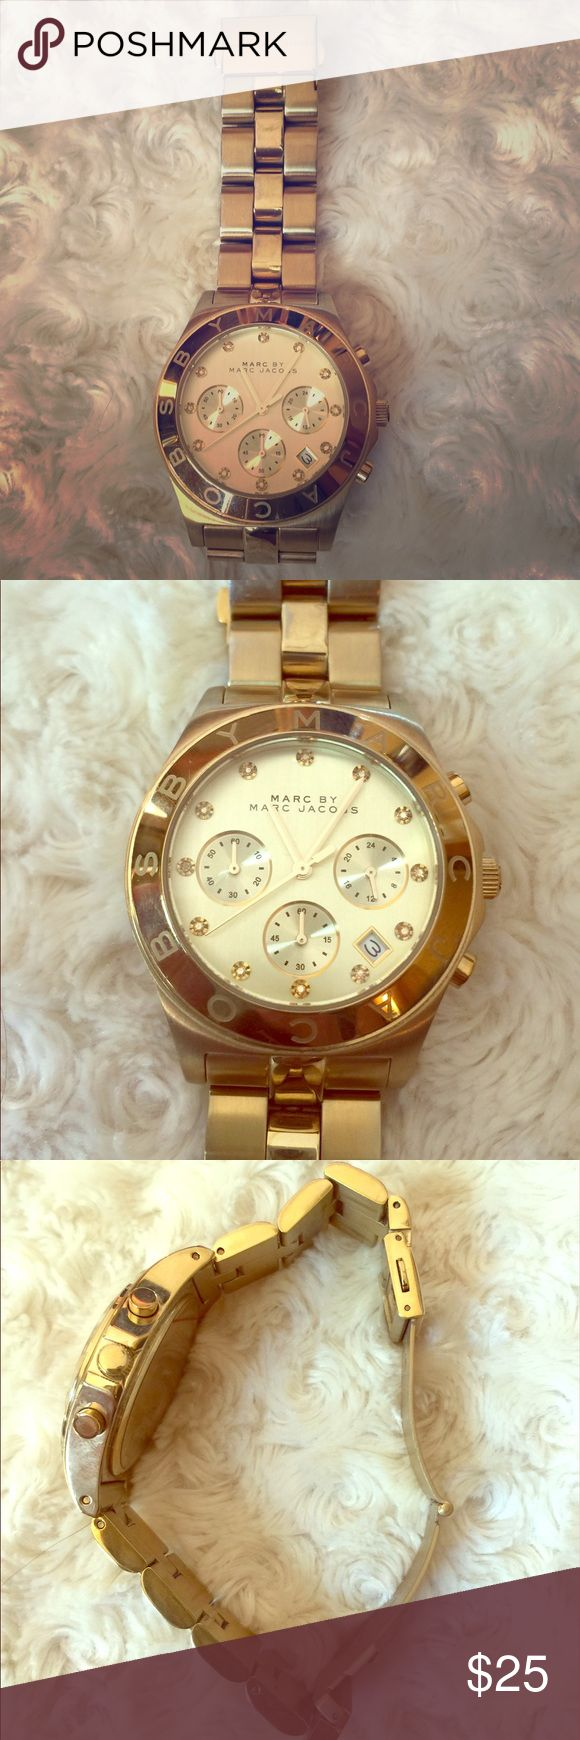 Marc by Marc Jacobs gold oversized watch 100% authentic Marc by Marc Jacobs watch. Preloved condition. Minor scratches and discoloration due to normal use. Need a new battery. I haven't used this watch for years and kept it in my closet. Marc By Marc Jacobs Accessories Watches